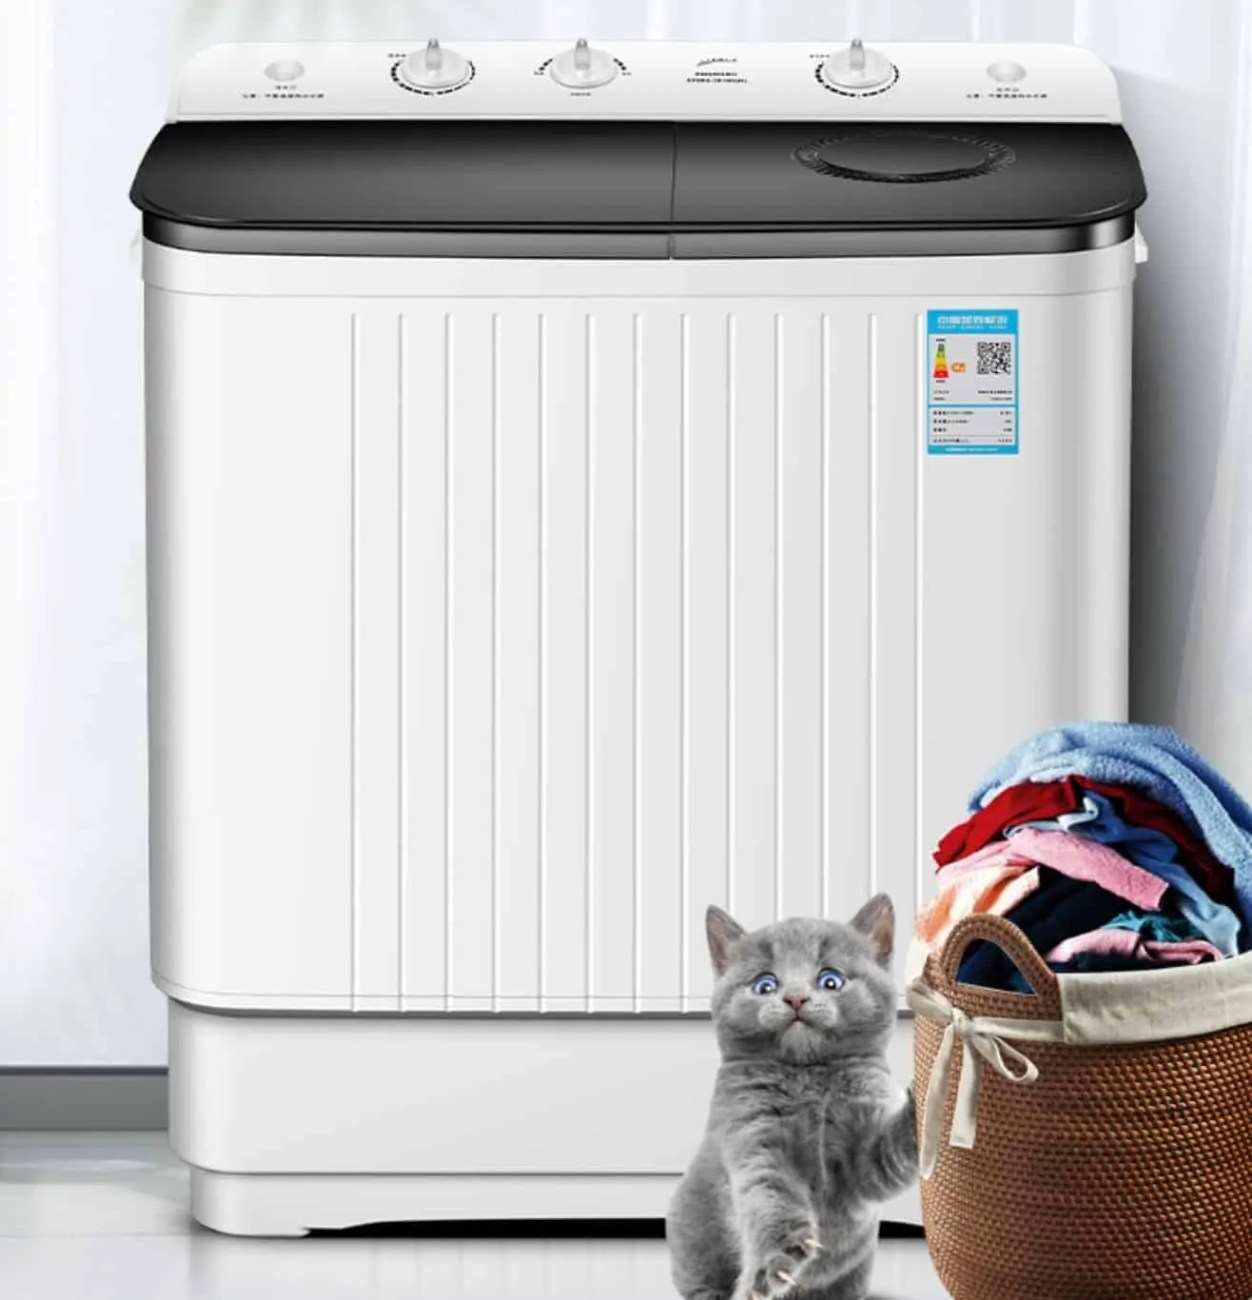 The Best Portable Washer and Dryer Buying Guide